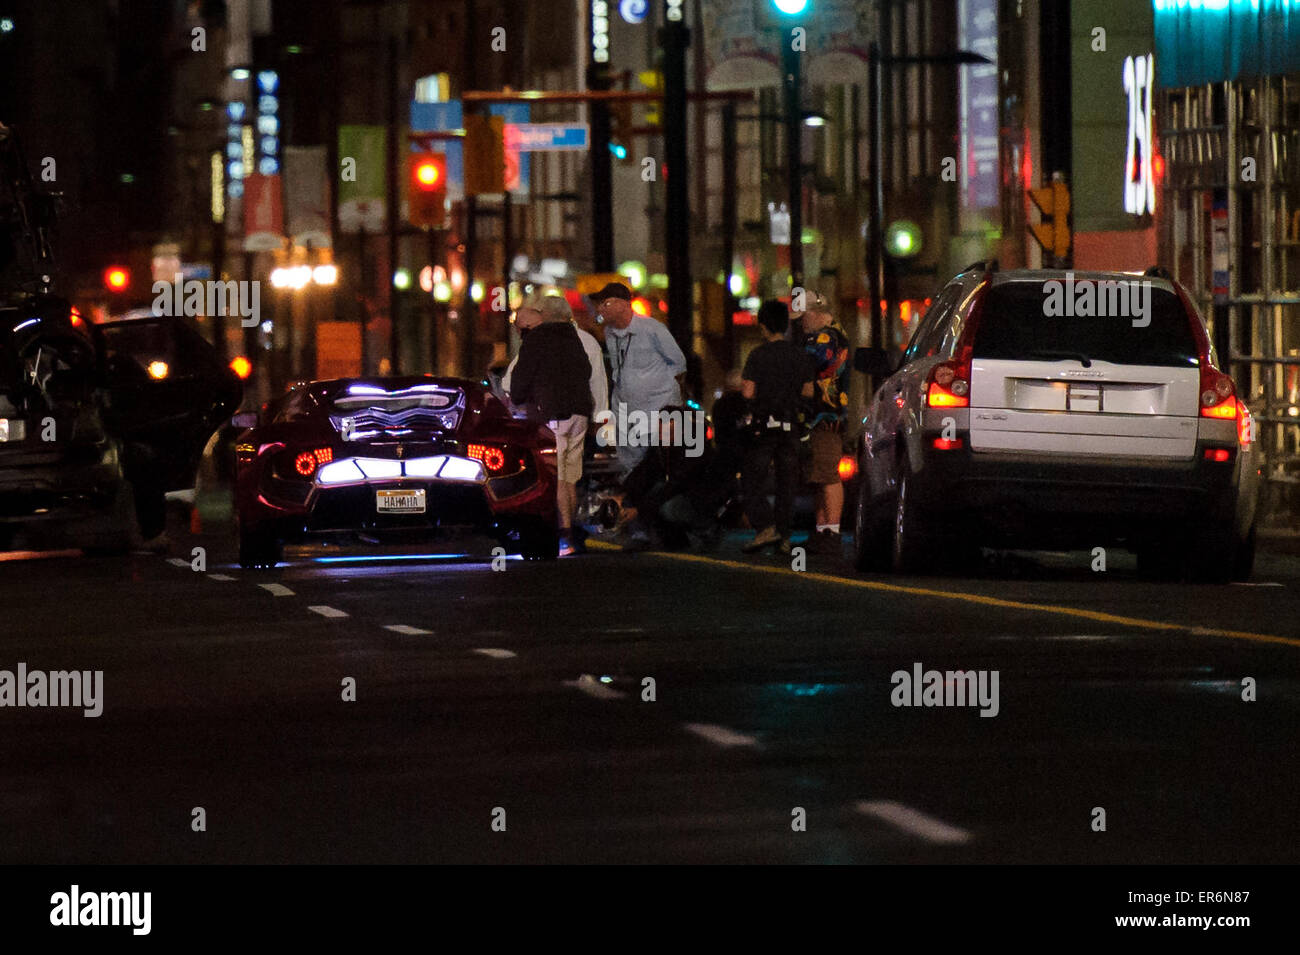 Toronto, Canada. 27th May, 2015. The Joker's car, a modified Vaydor G34 can be seen on the movie set for action - Stock Image